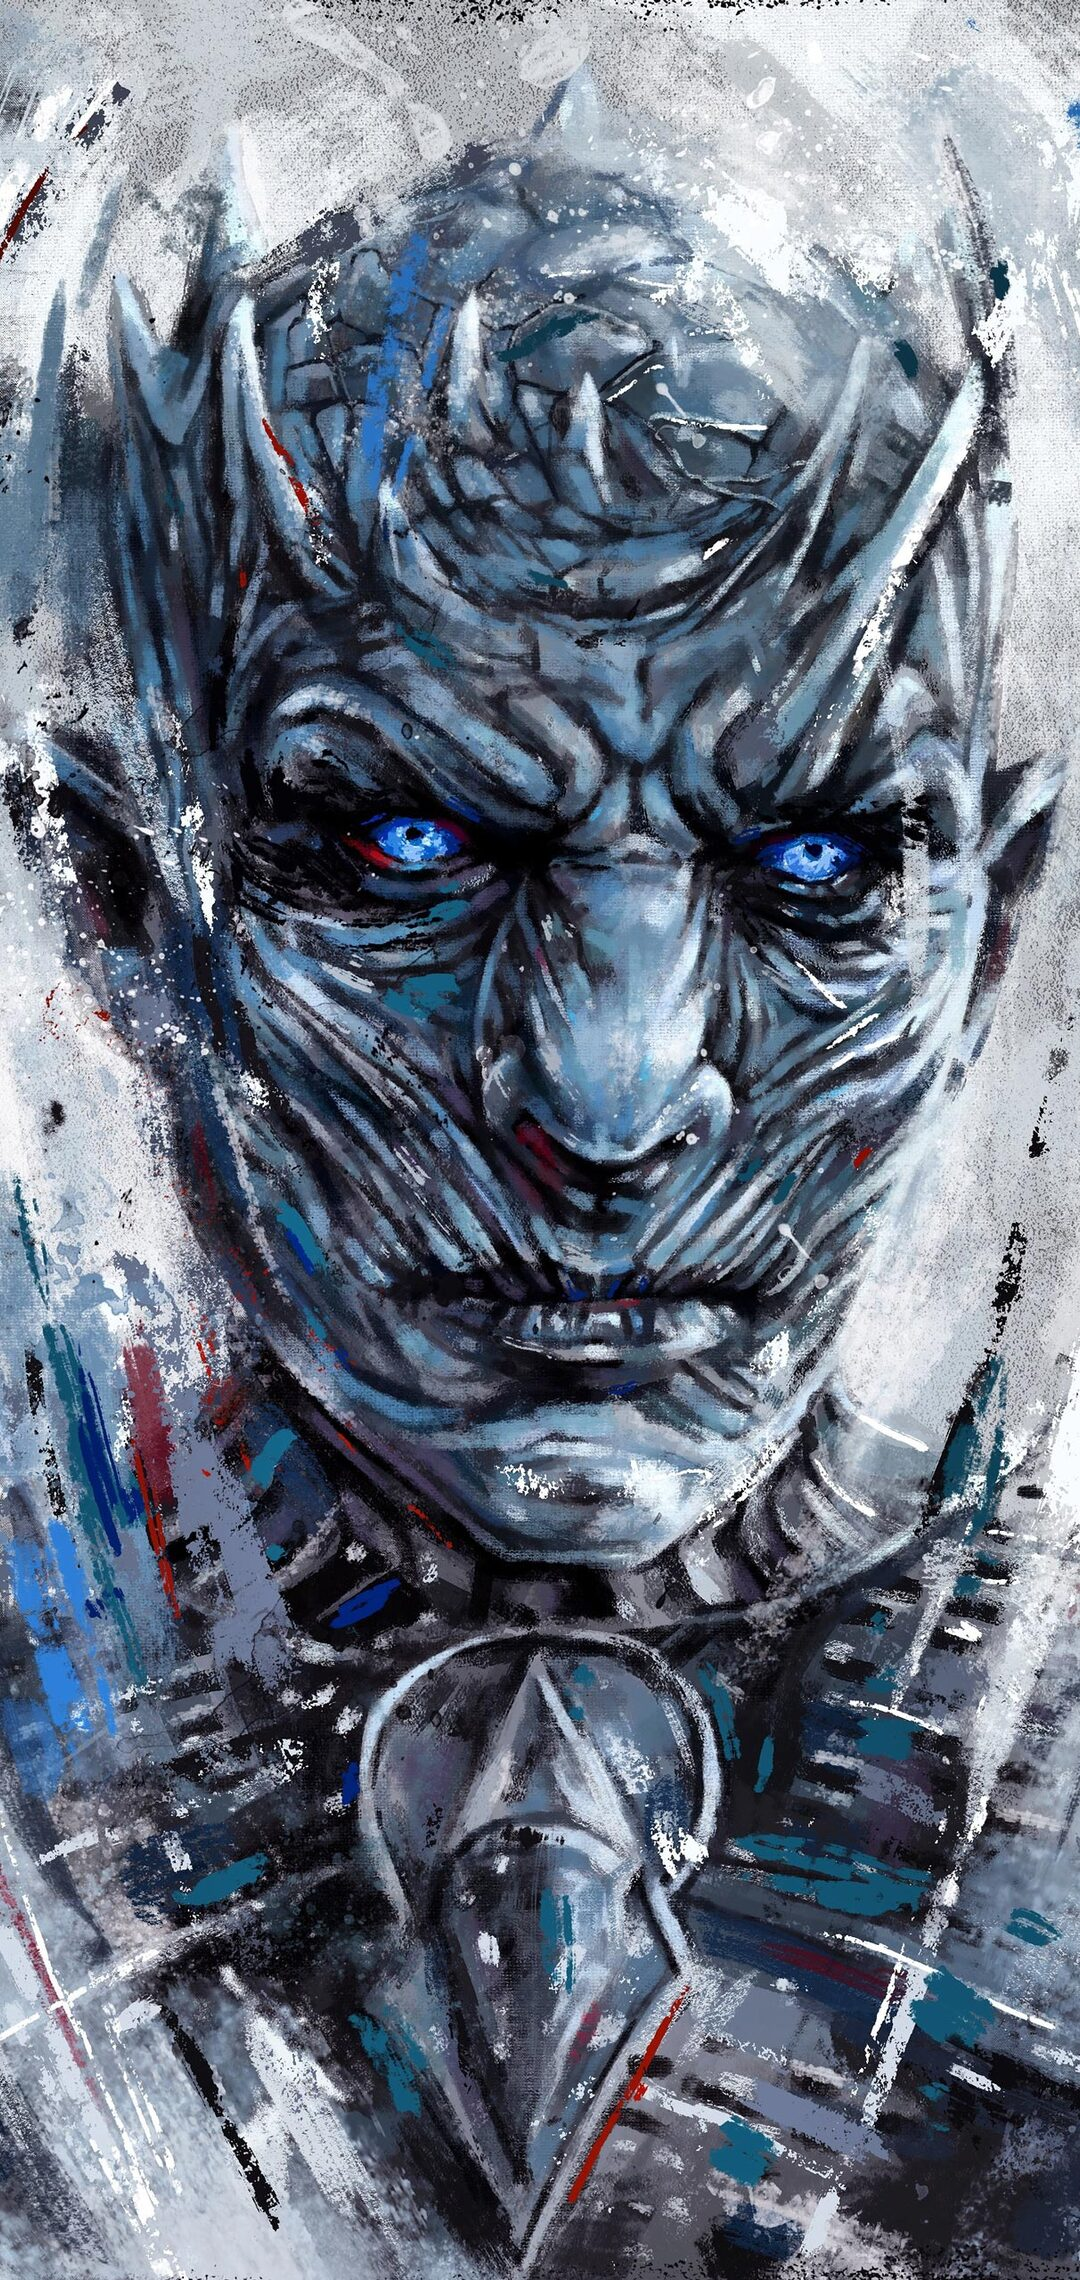 night-king-artwork-dk.jpg